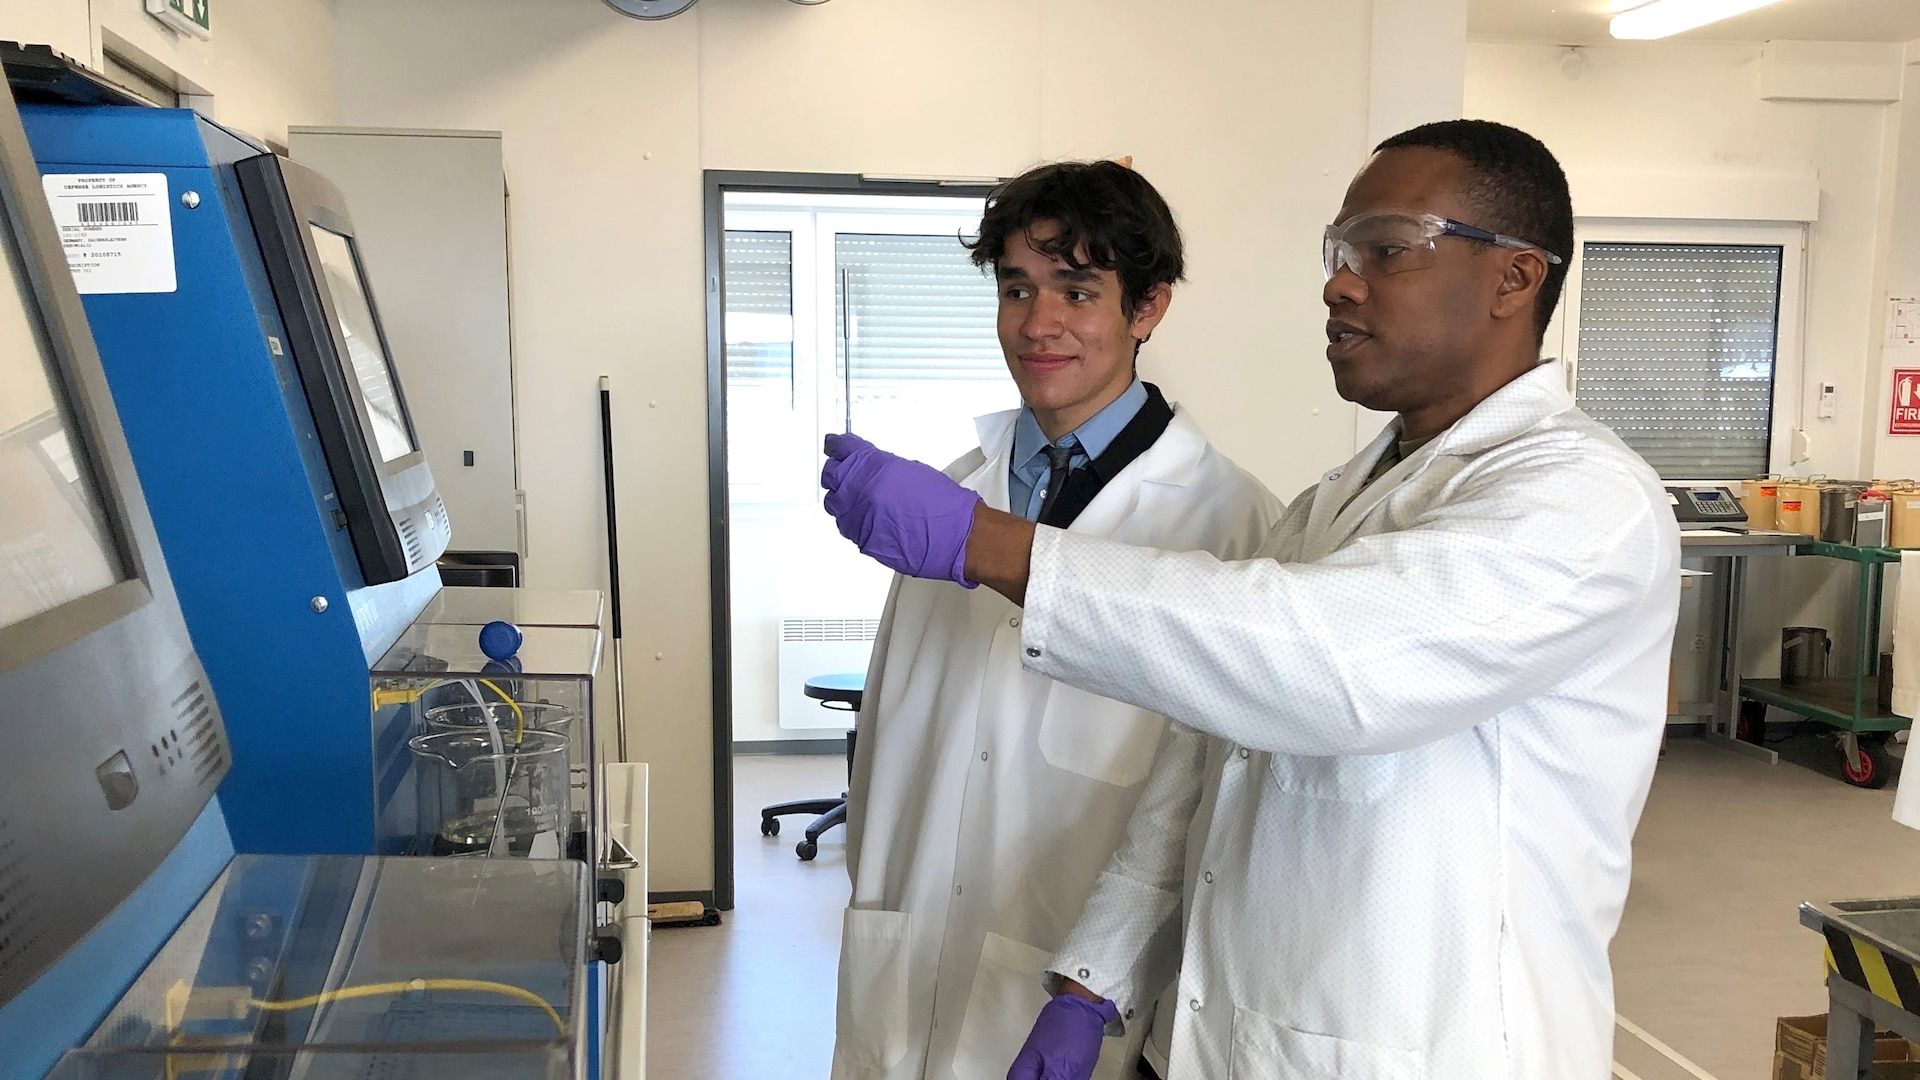 two people in lab coats using testing equipment